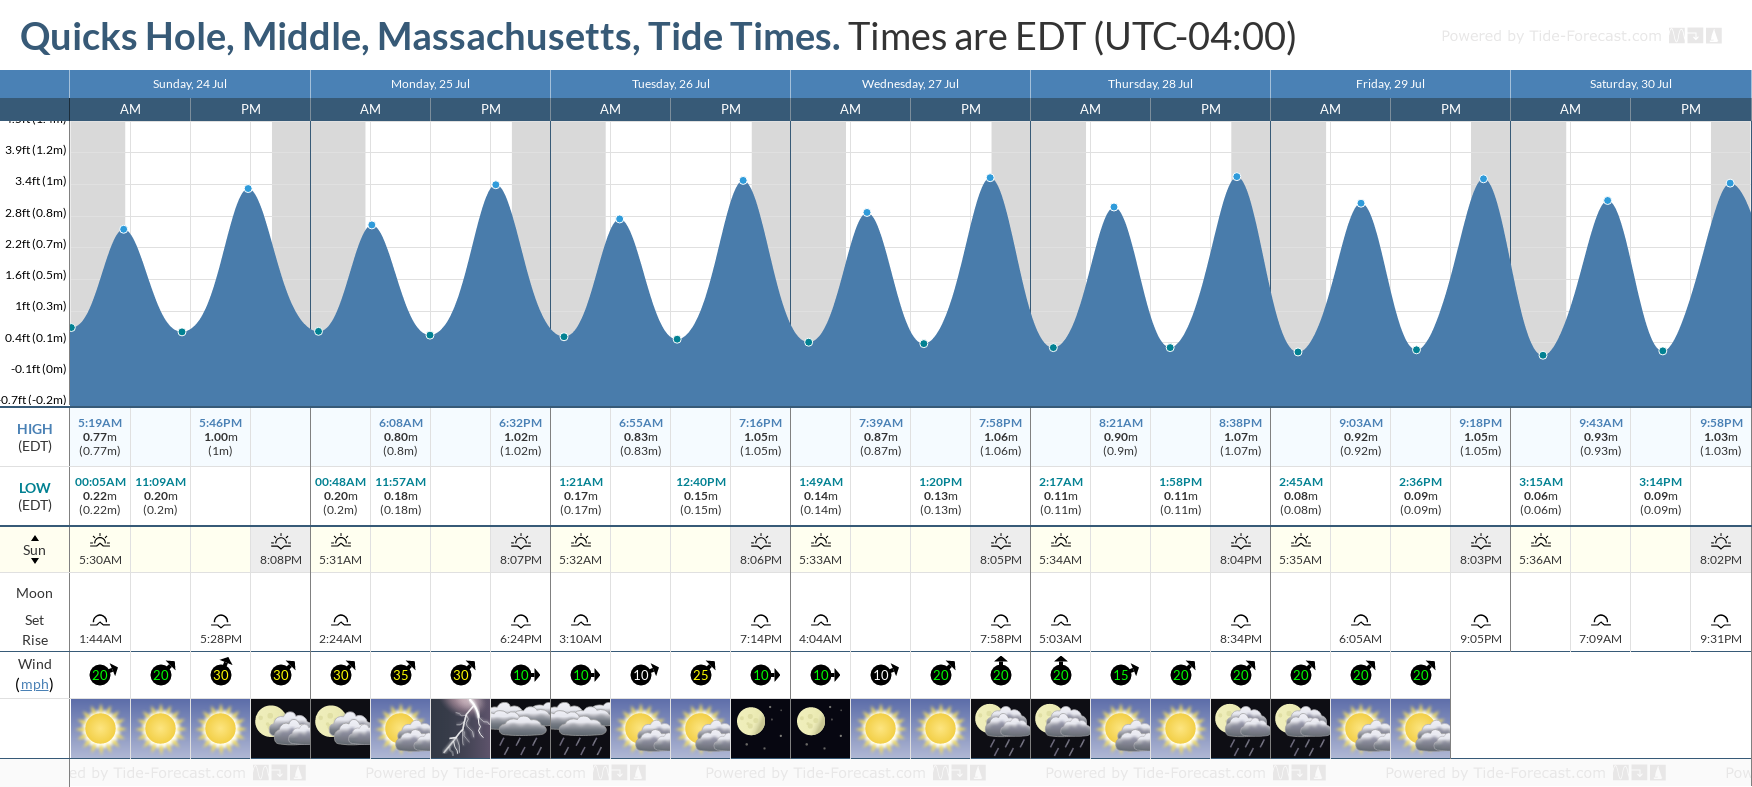 Quicks Hole, Middle, Massachusetts Tide Chart including high and low tide tide times for the next 7 days